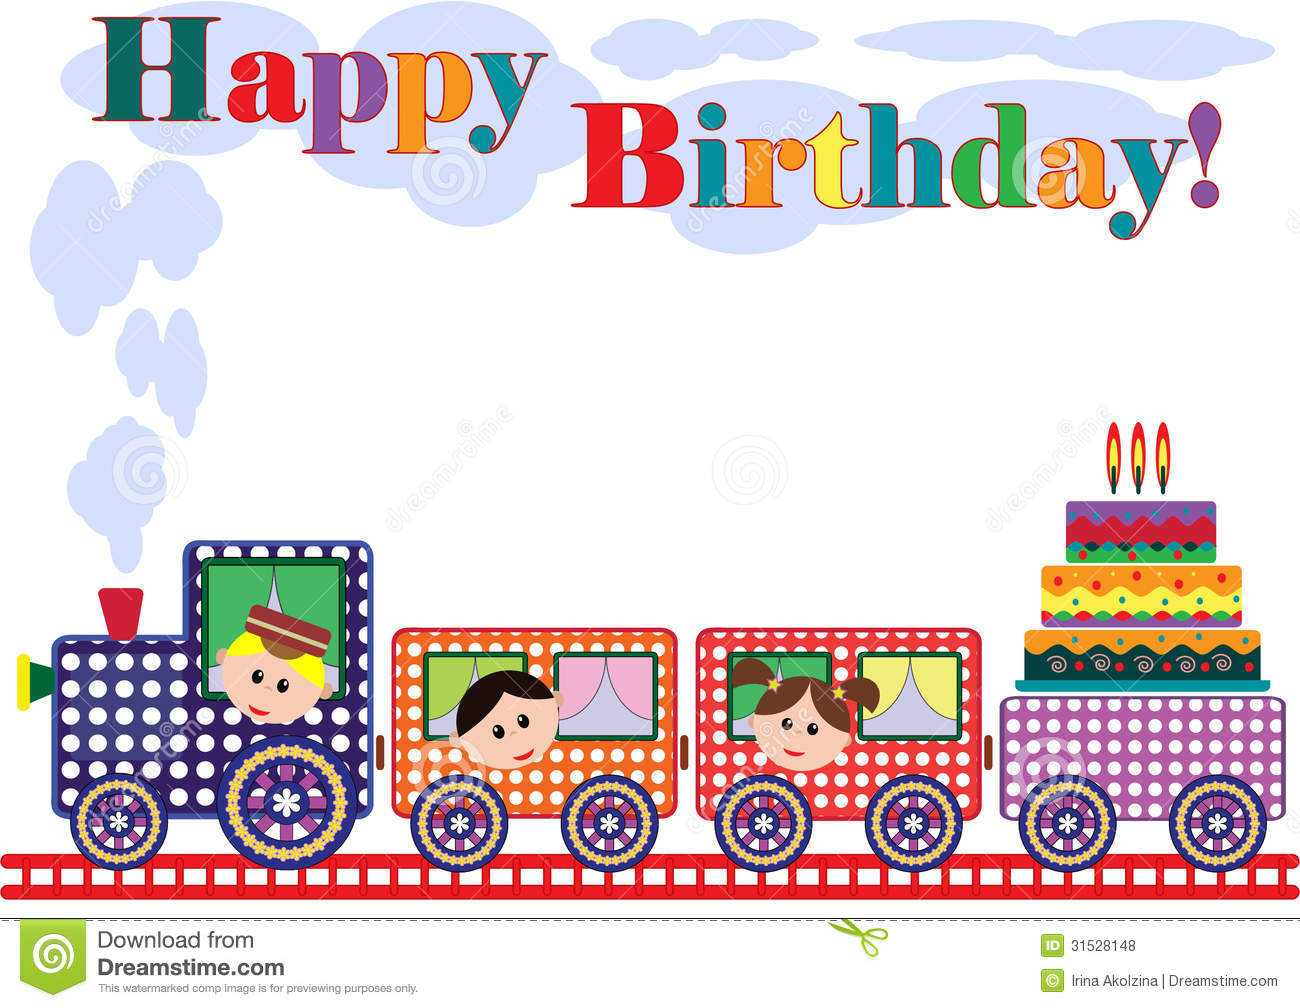 clipart of birthday cards ; train-clipart-birthday-train-pencil-and-in-color-train-clipart-train-clipart-birthday-train-